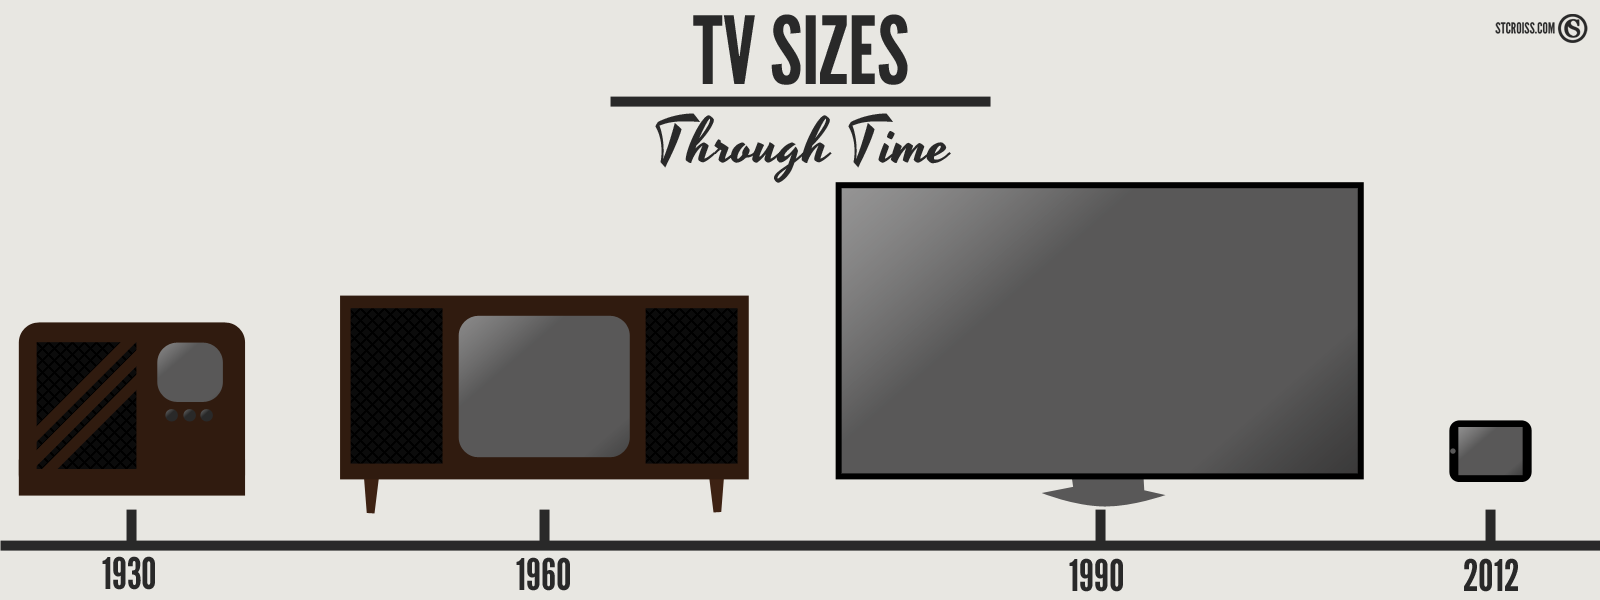 Tv sizes through time